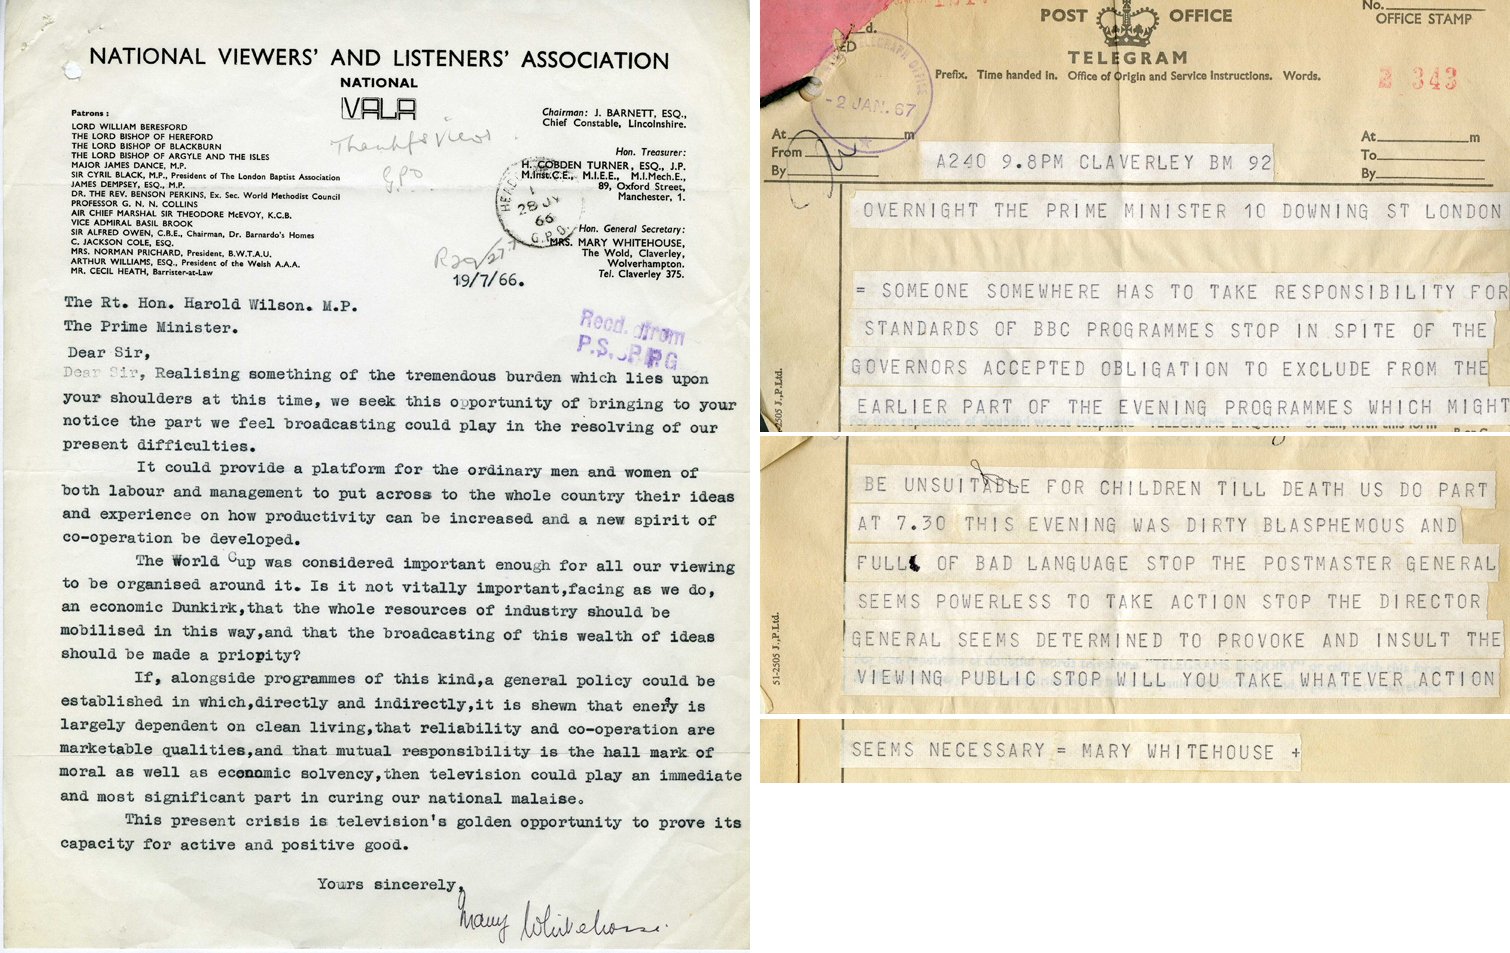 Letter and telegram from Mrs Mary Whitehouse to Prime Minister Harold Wilson, both from the Summer of 1966 (HO 256/719)